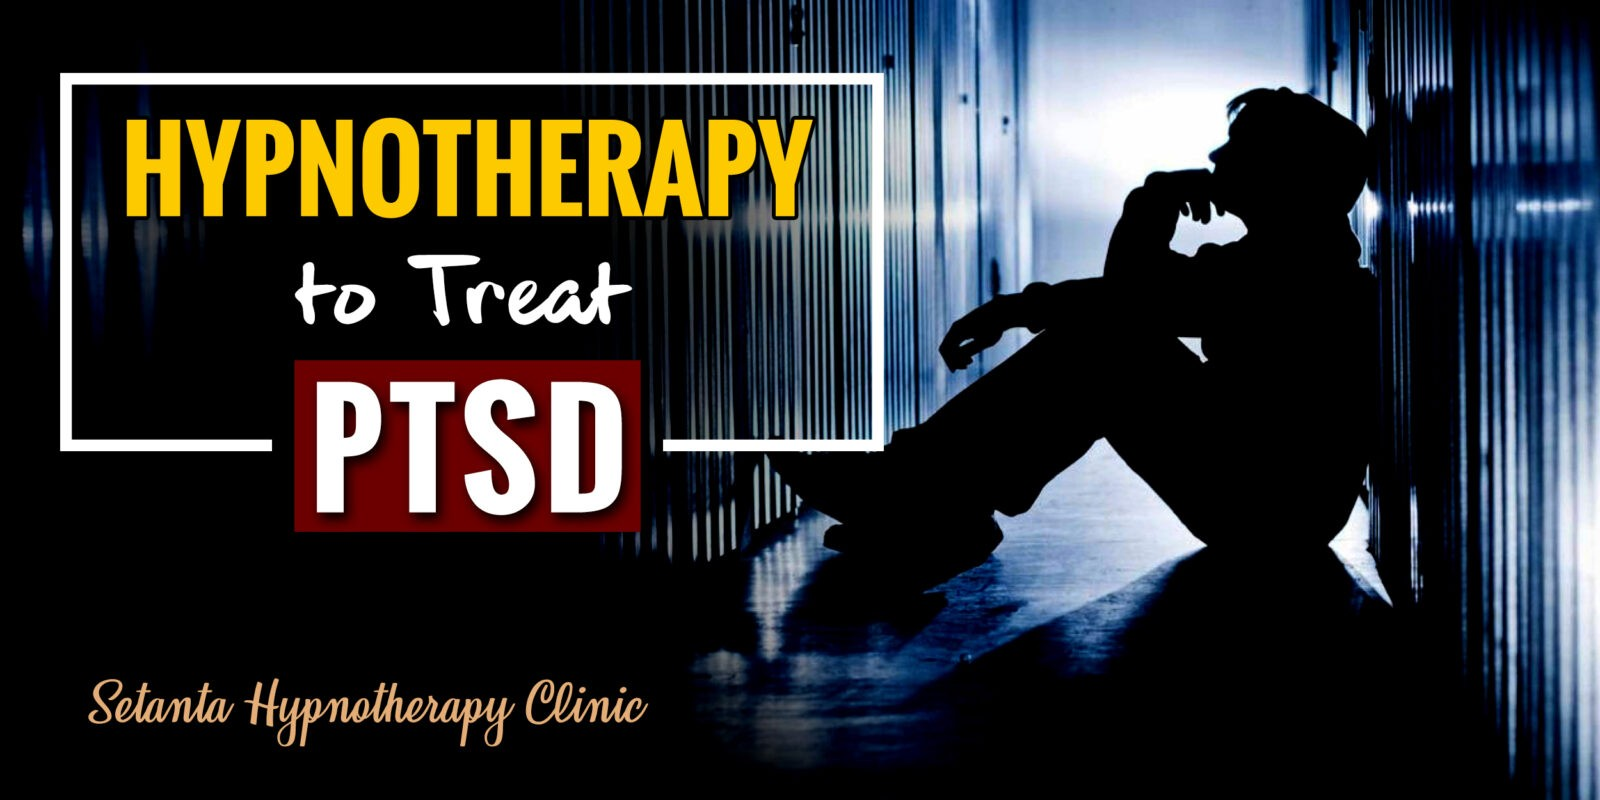 PTSD is treatable with Hypnotherapy